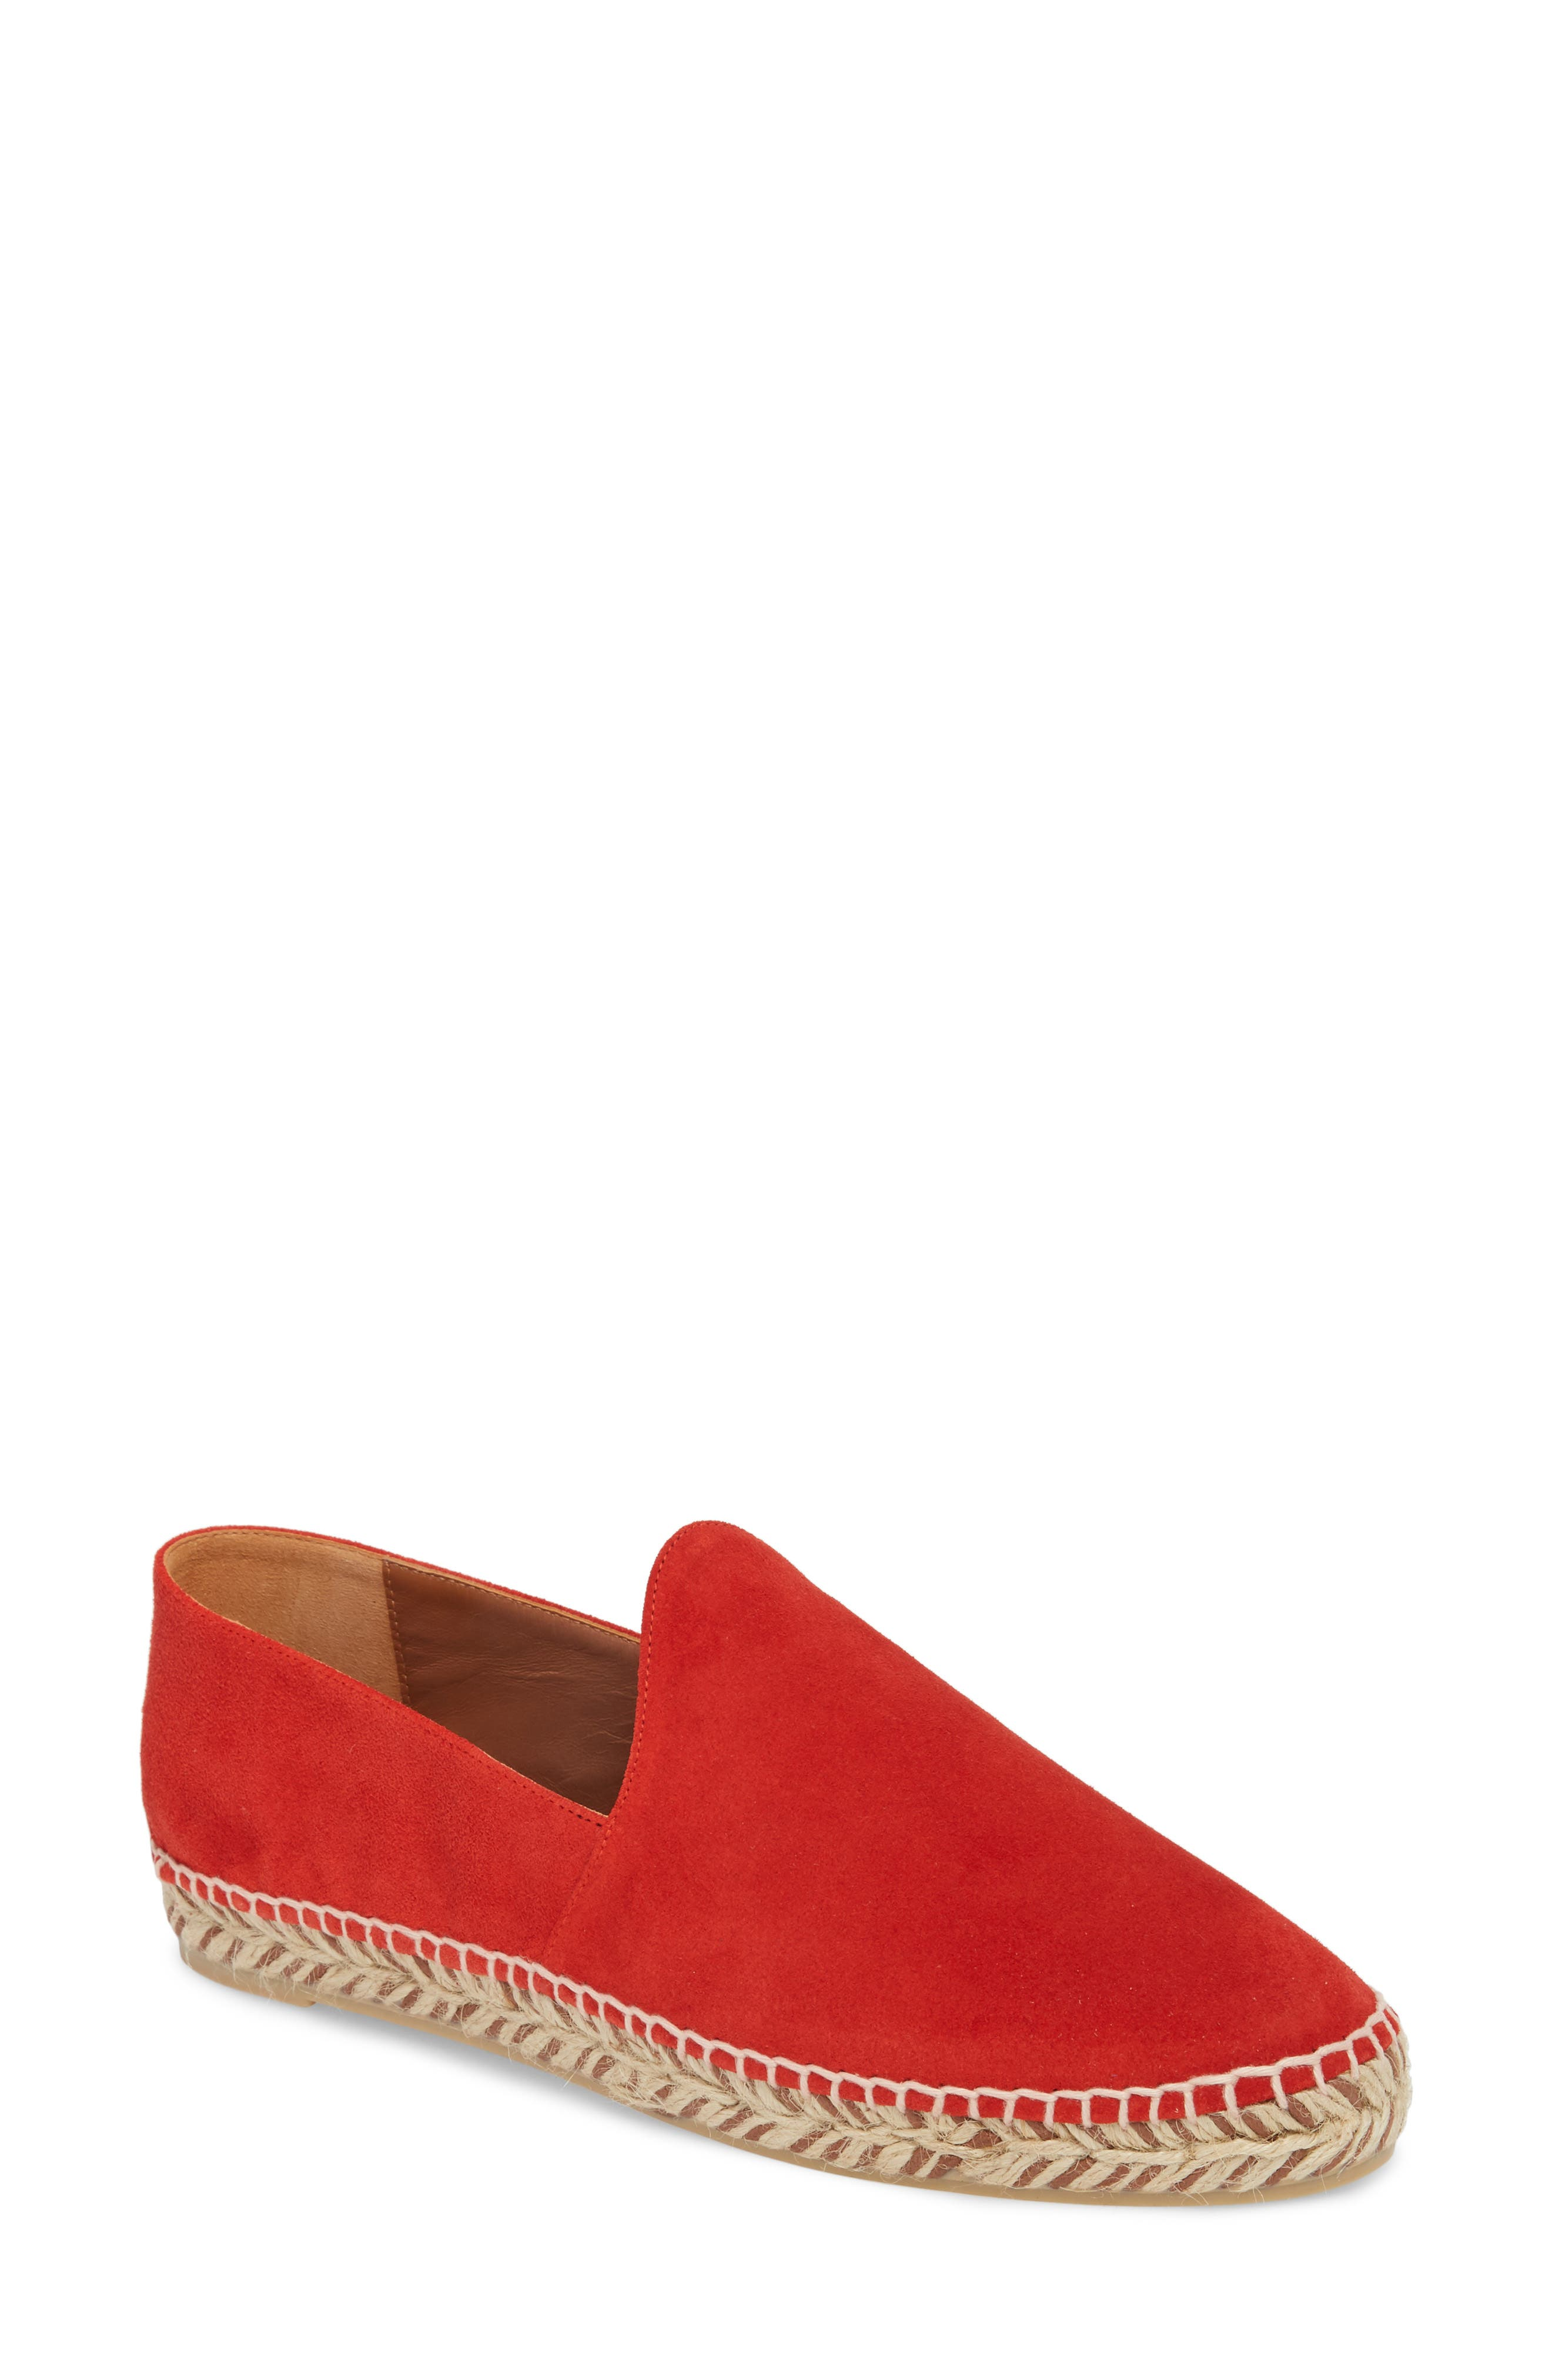 Haddie Espadrille Loafer,                         Main,                         color, Red Suede